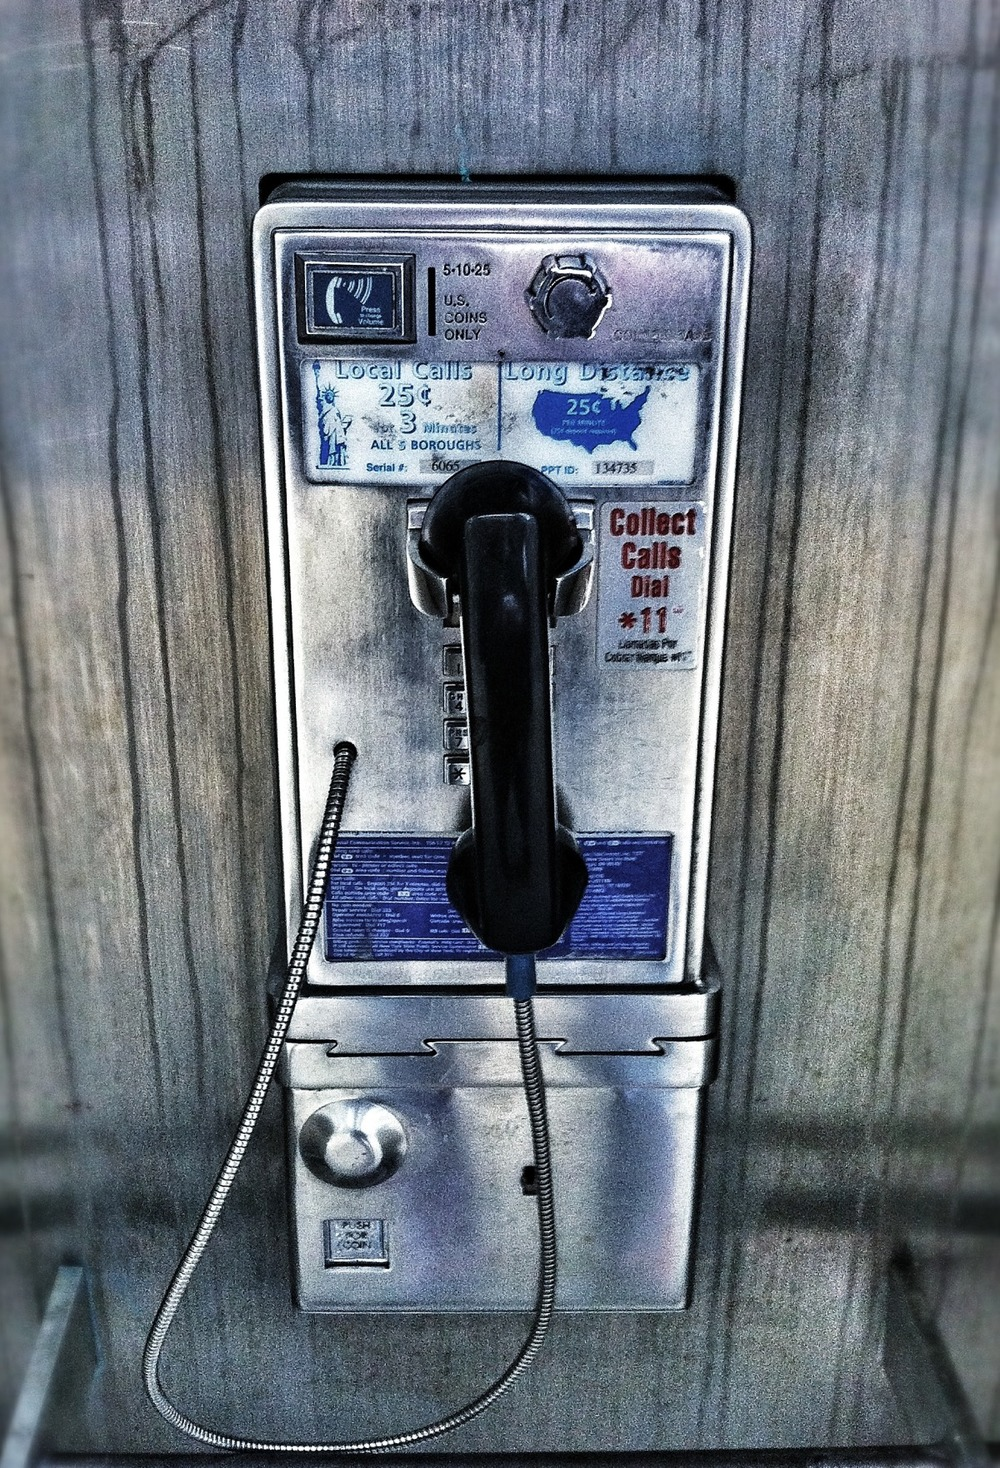 payphone export july 2012 3.jpg